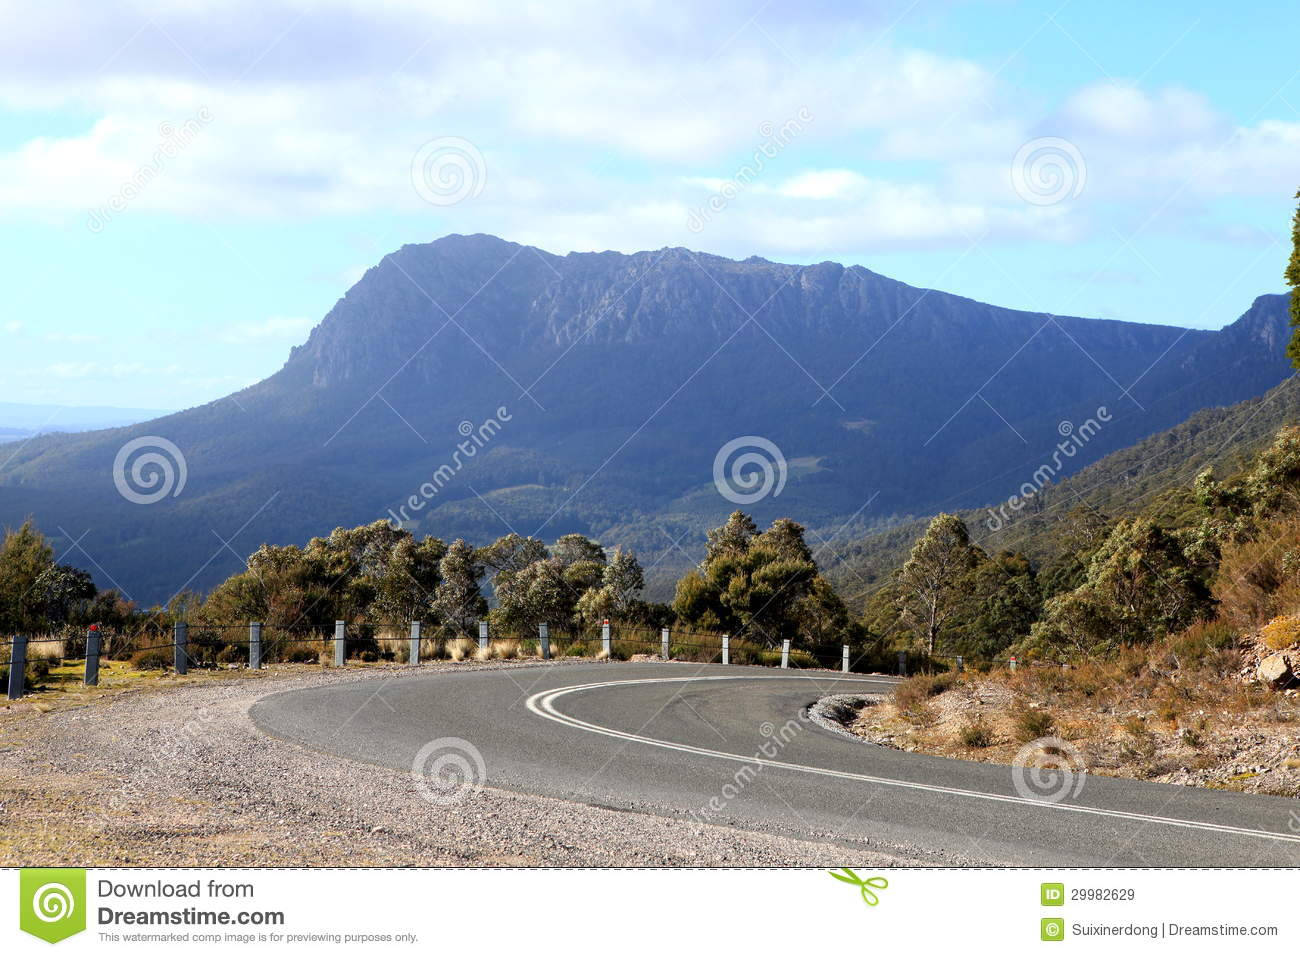 ... Scenery In Australia Royalty Free Stock Images - Image: 29982629